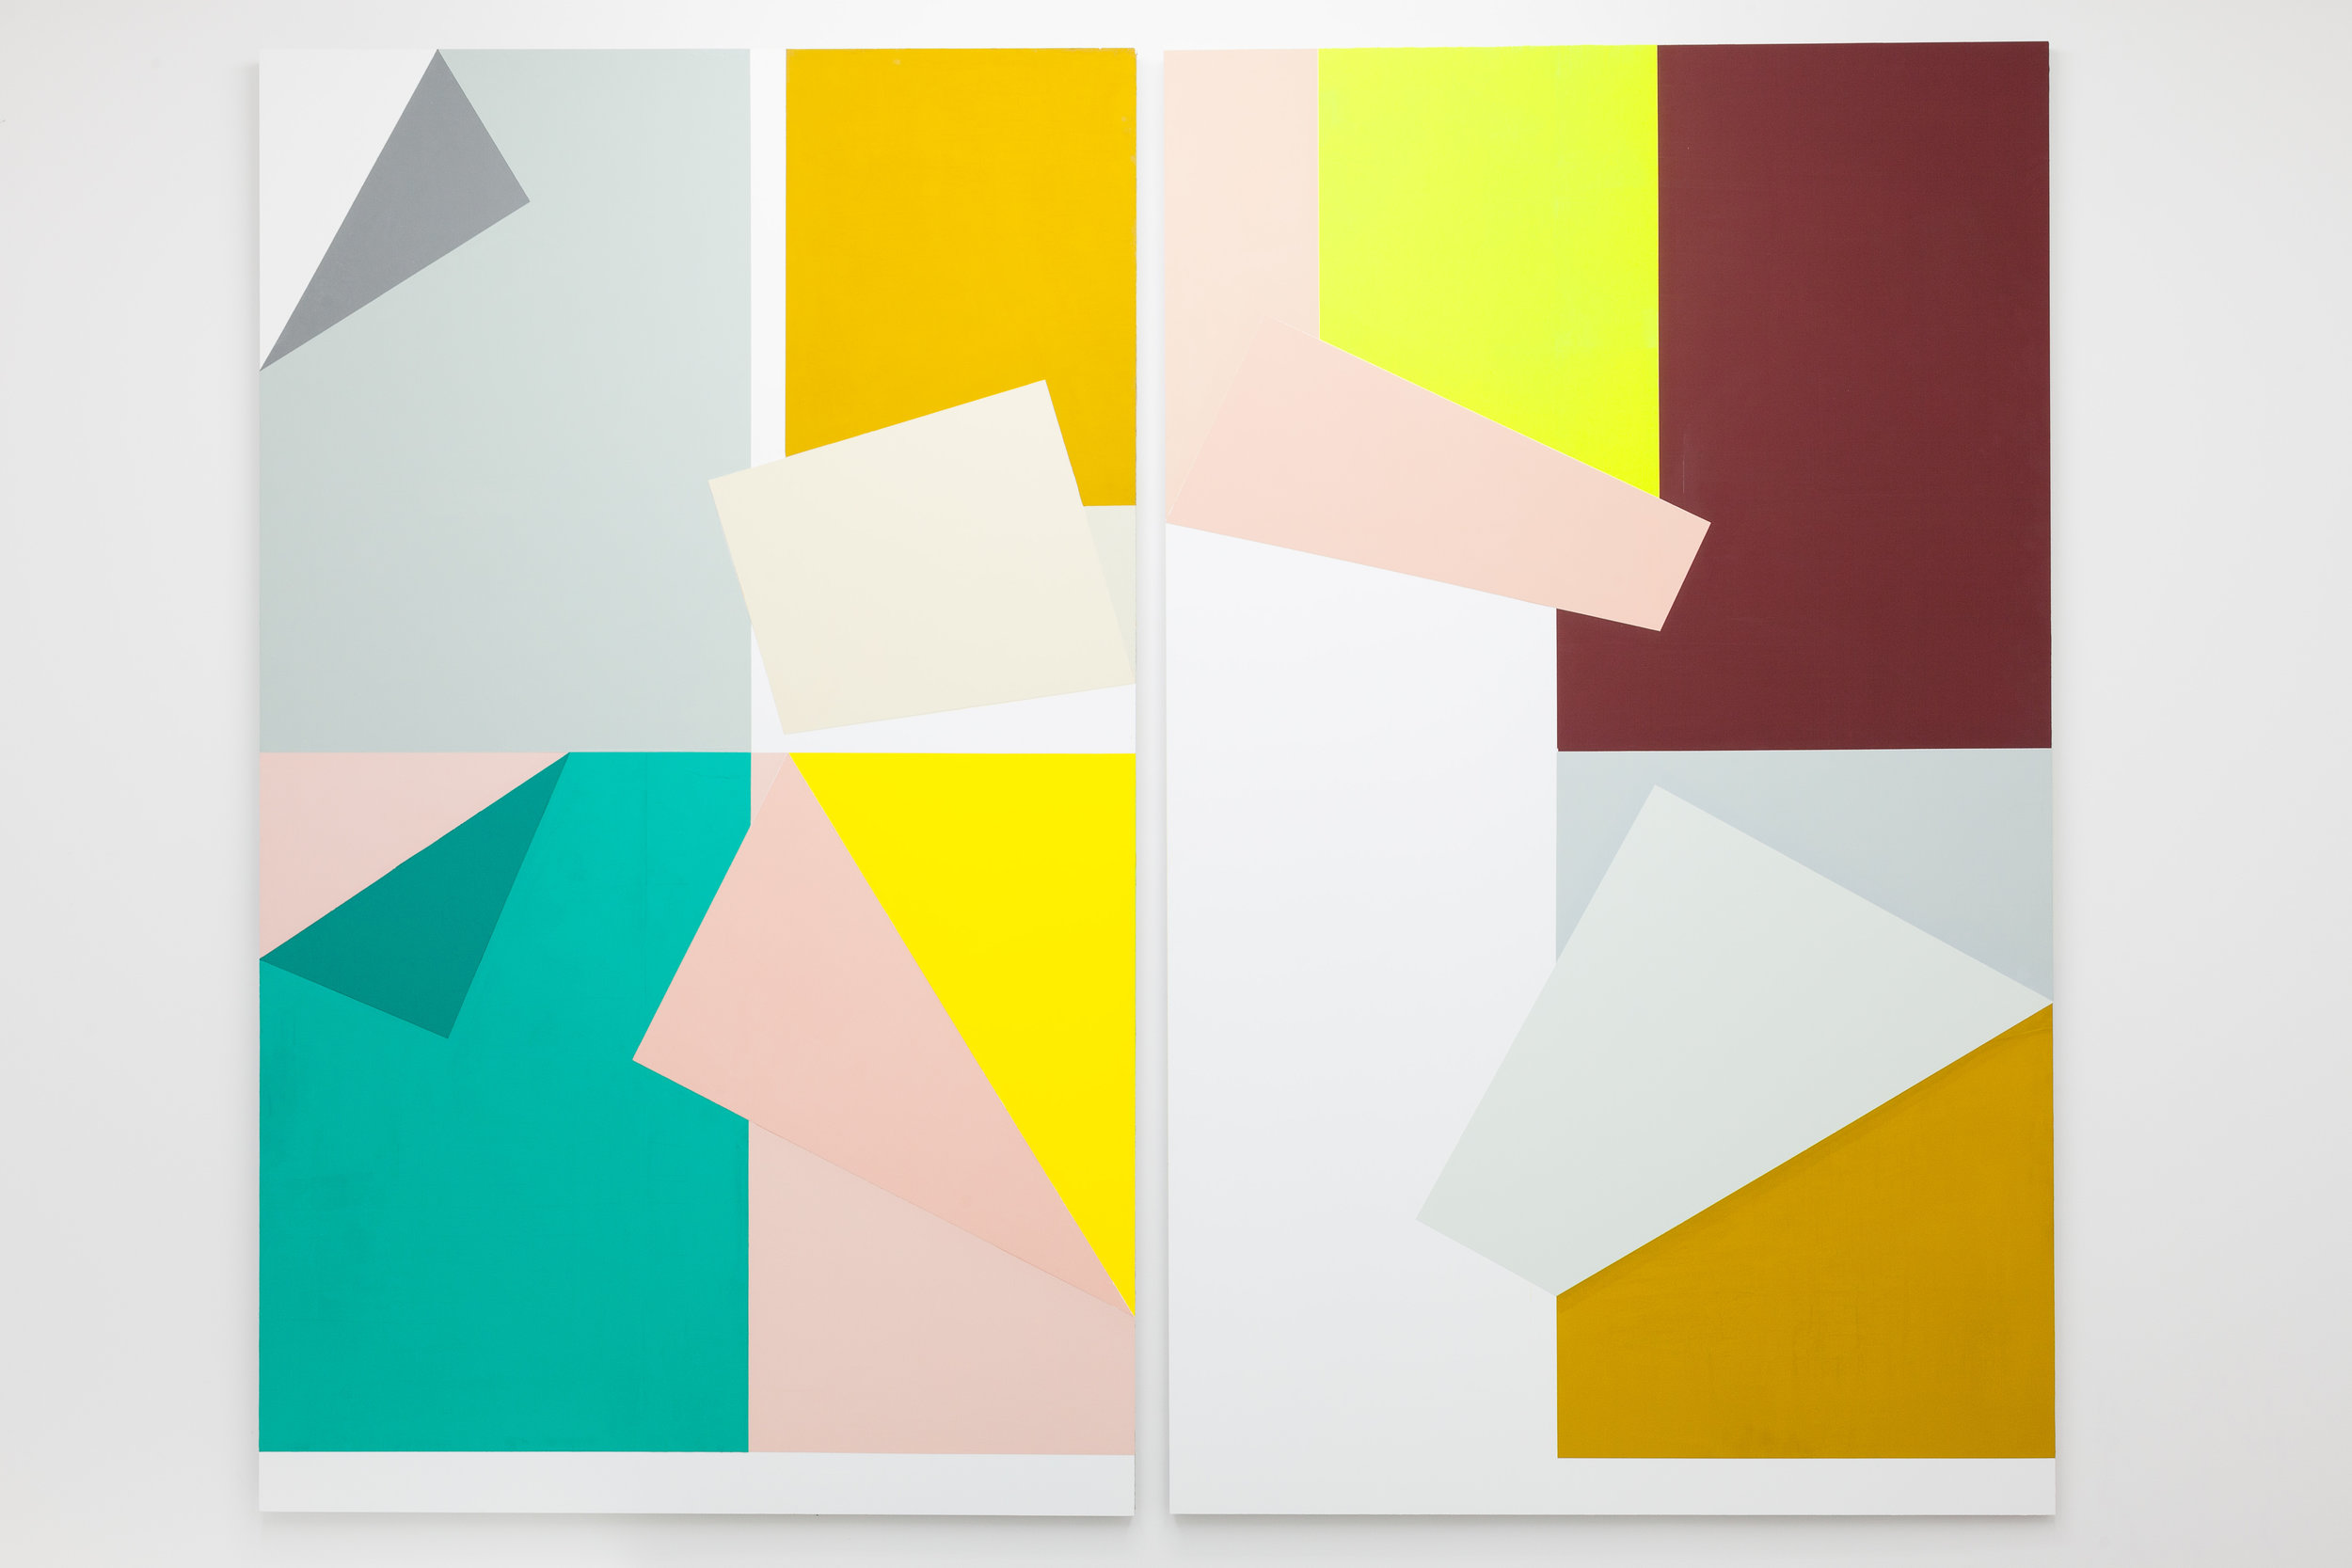 Collected Colors # 6 . Vinyl and acrylic on alucore. Diptych. 208 x 125 cm. each panel. Overall 255 cm.